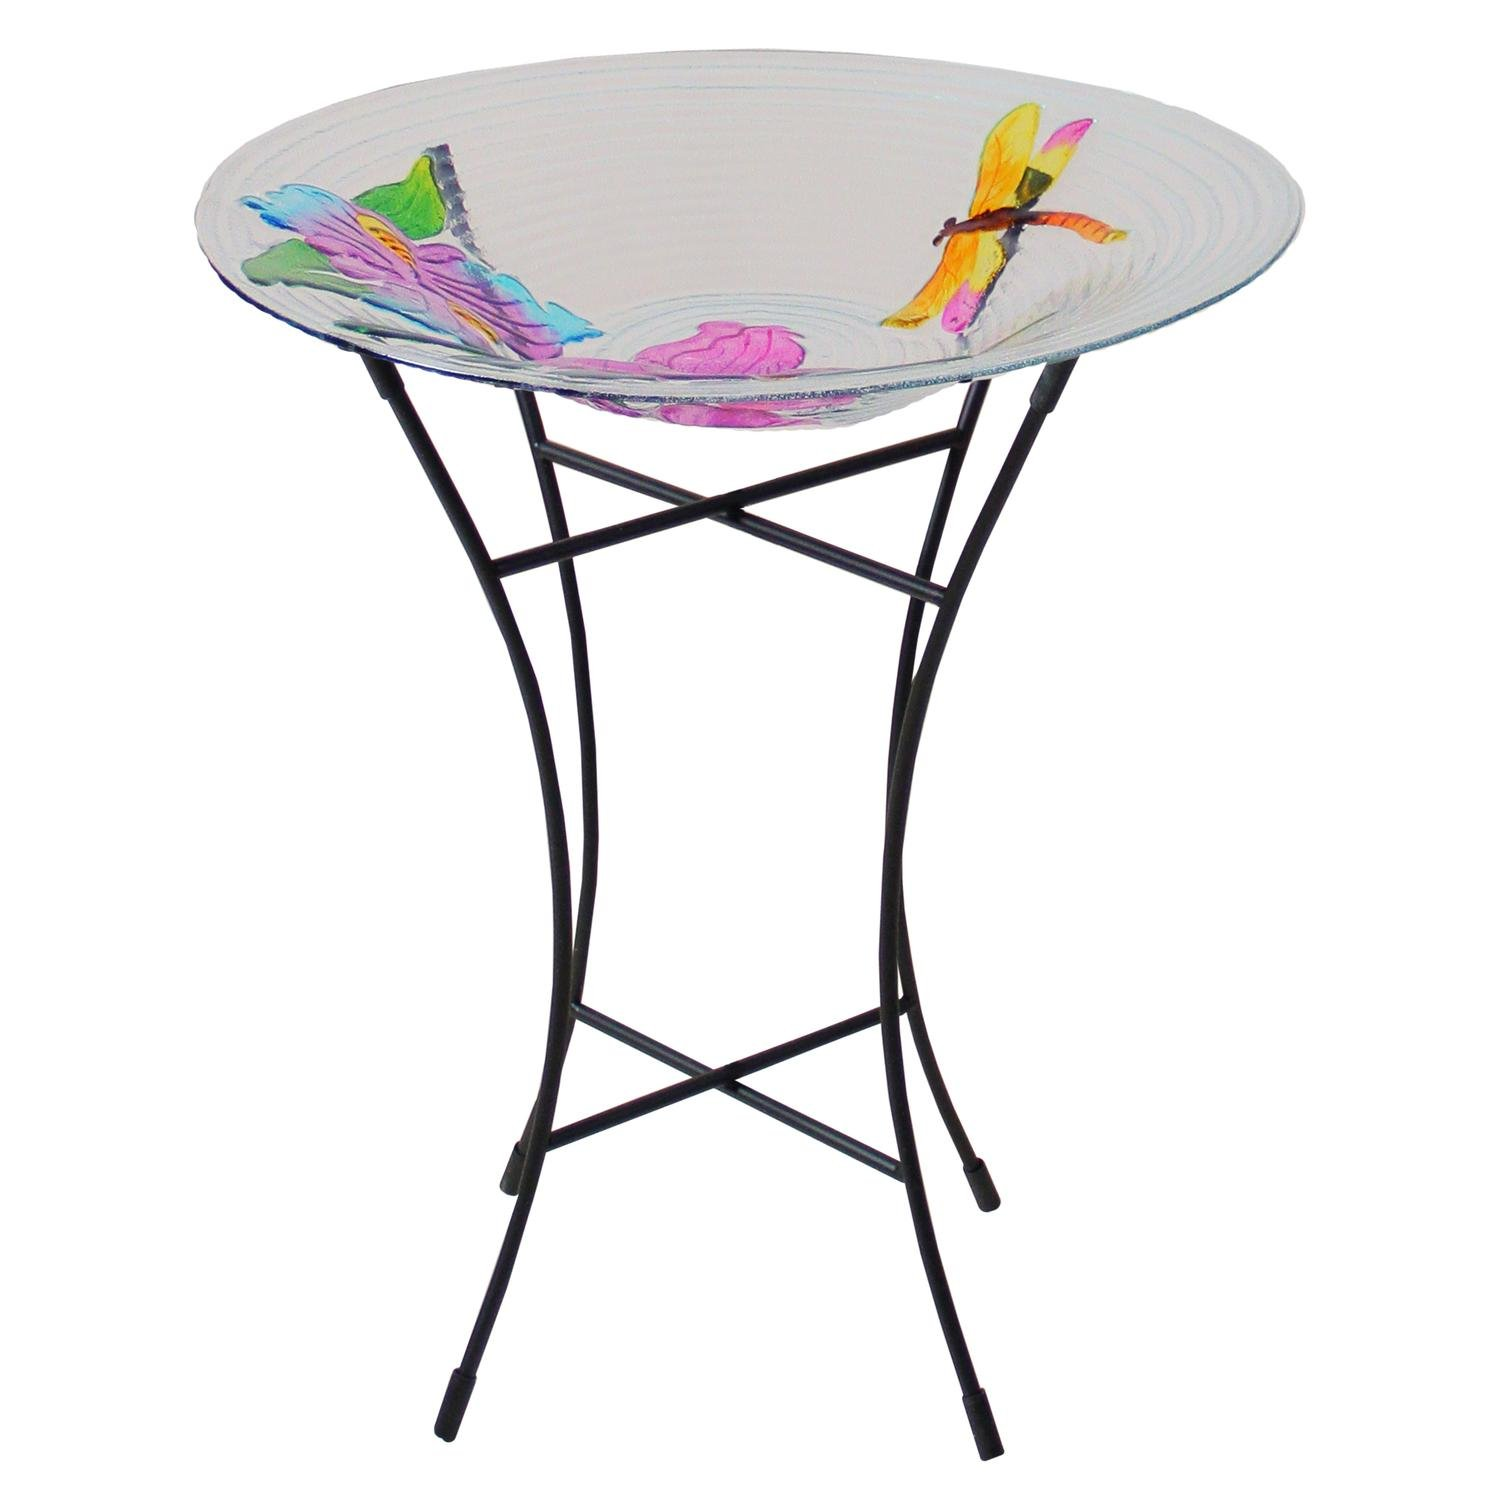 CC Outdoor Living Hand Painted Glass Dragonfly Flower Spring Outdoor Garden Bird Bath, 21, Off/White 21 DAK 12SPG502